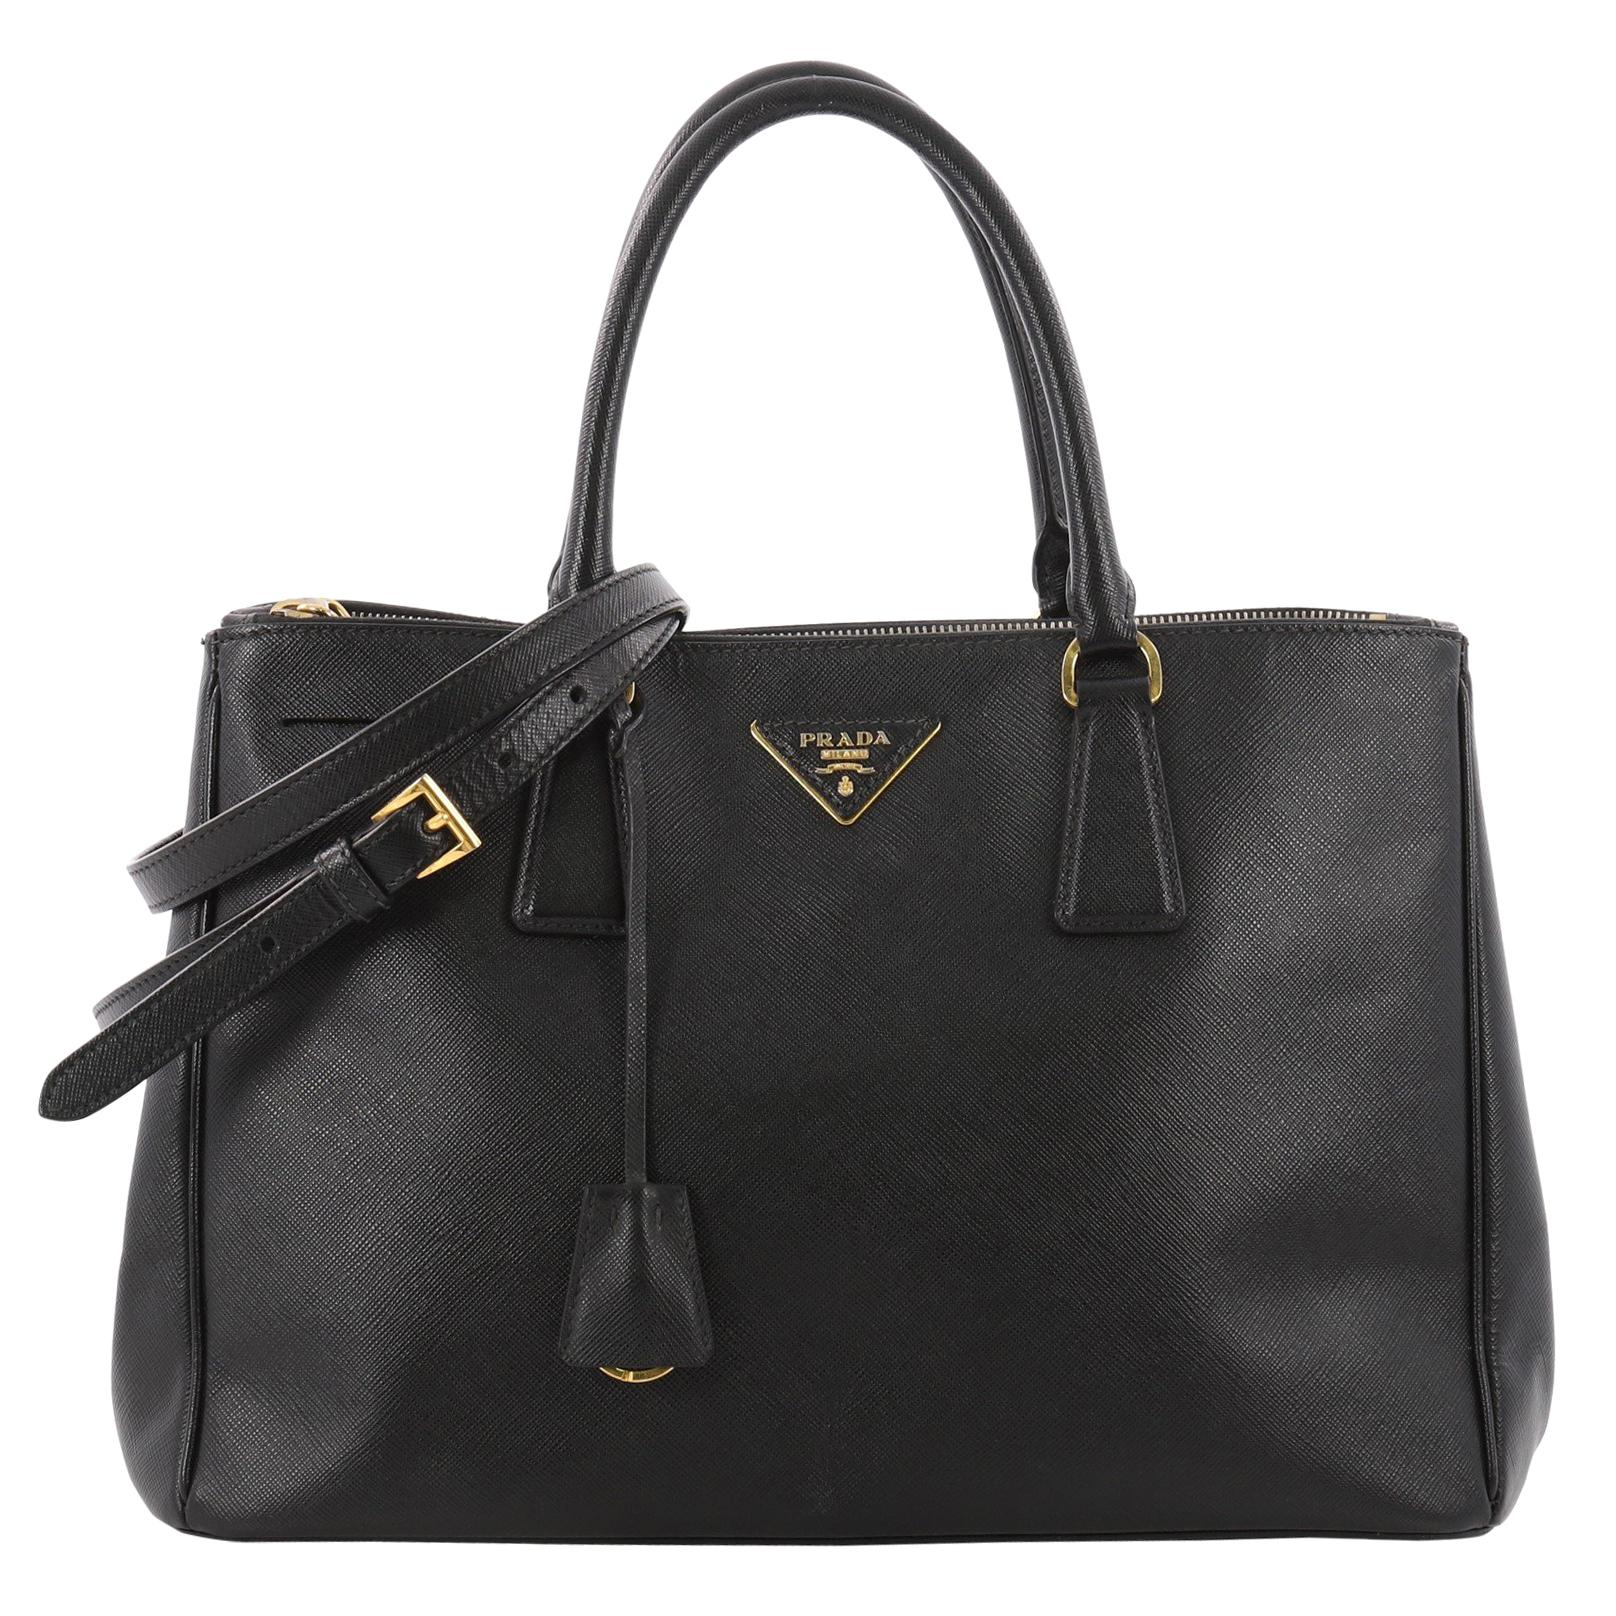 7365ac430dcc ... where to buy vintage prada top handle bags 161 for sale at 1stdibs  efcfd 9bdb7 ...